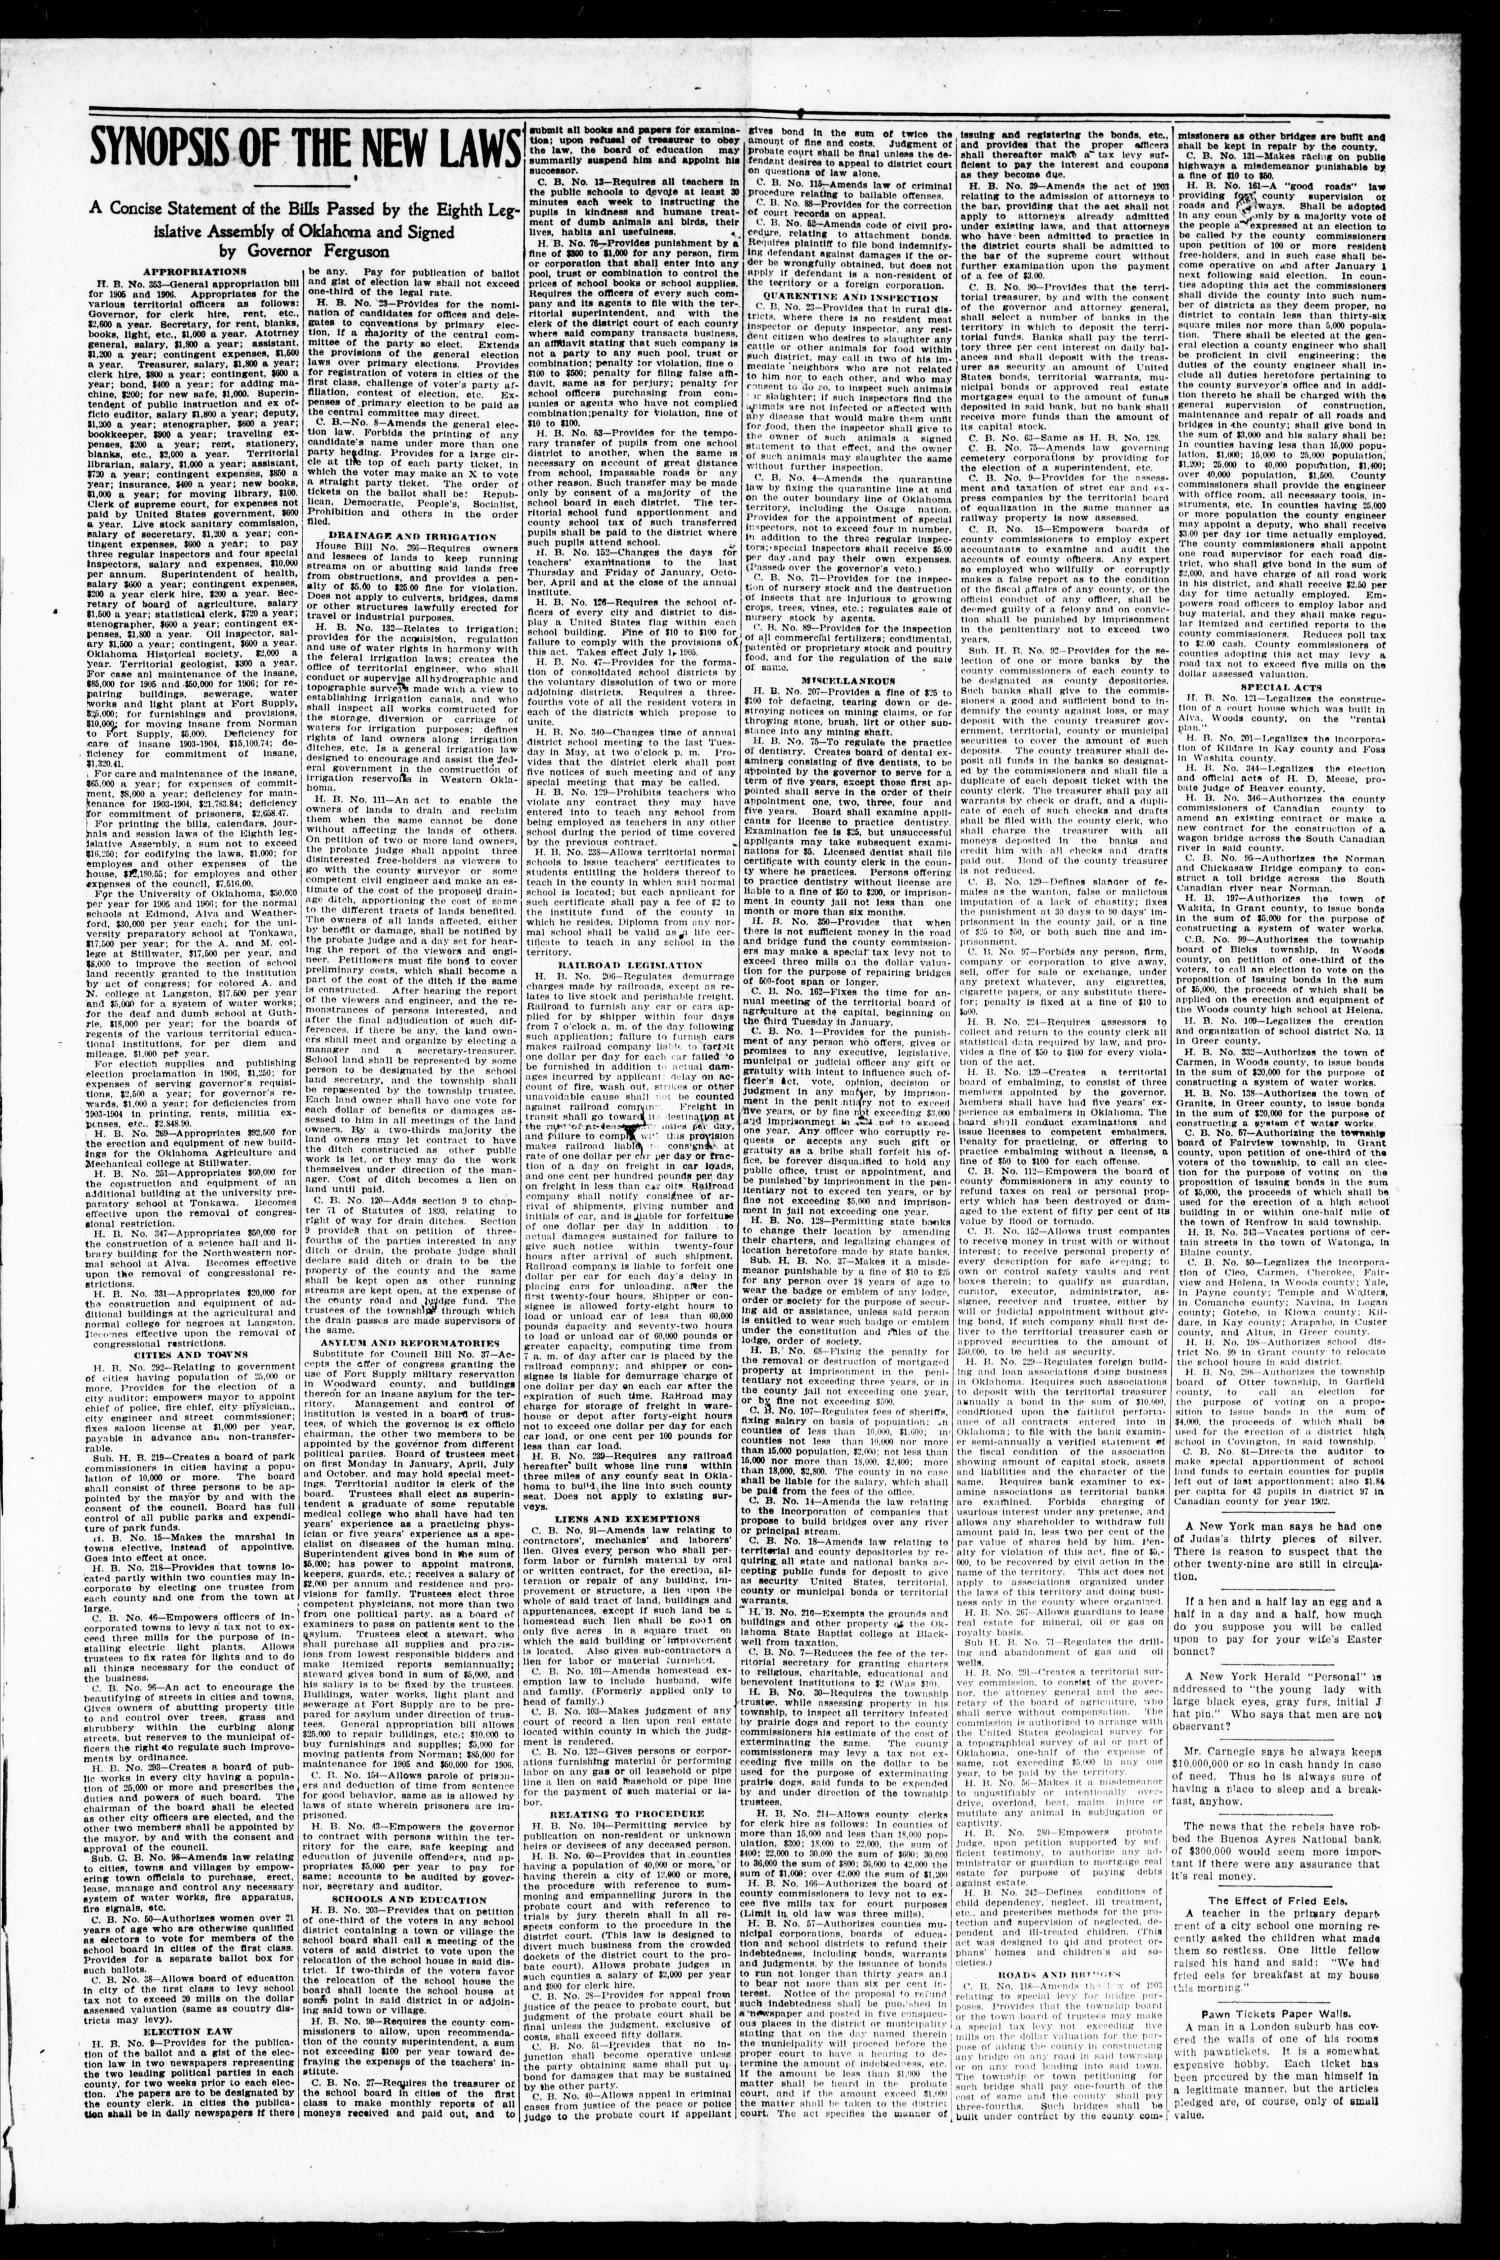 Lexington Leader. (Lexington, Okla.), Vol. 19, No. 23, Ed. 1 Friday, March 3, 1905                                                                                                      [Sequence #]: 3 of 12